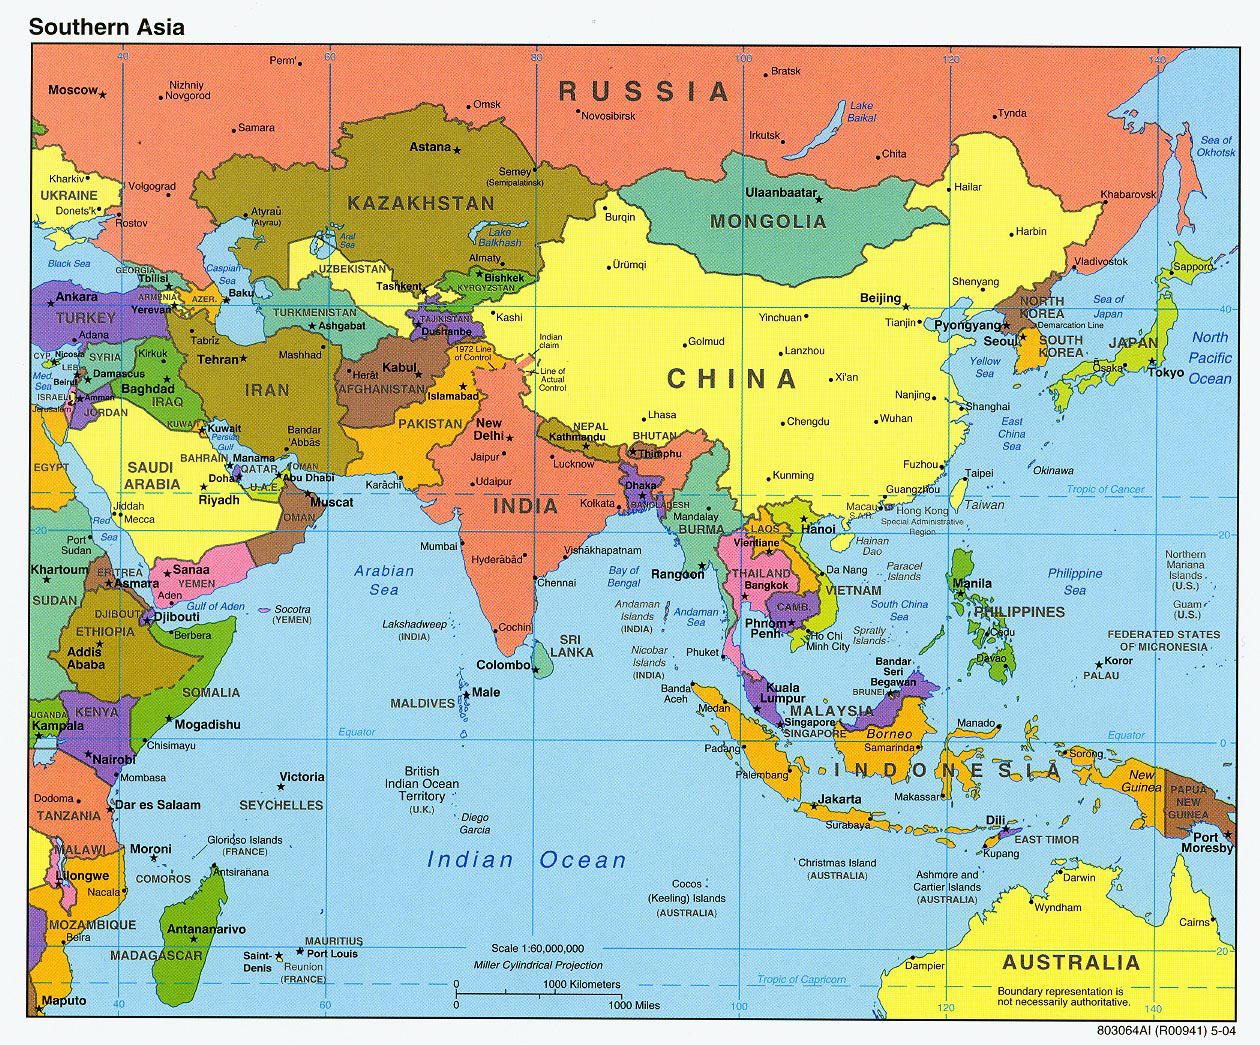 Detailed Map Of Asia.Detailed Political Map Of Southern Asia With Capitals And